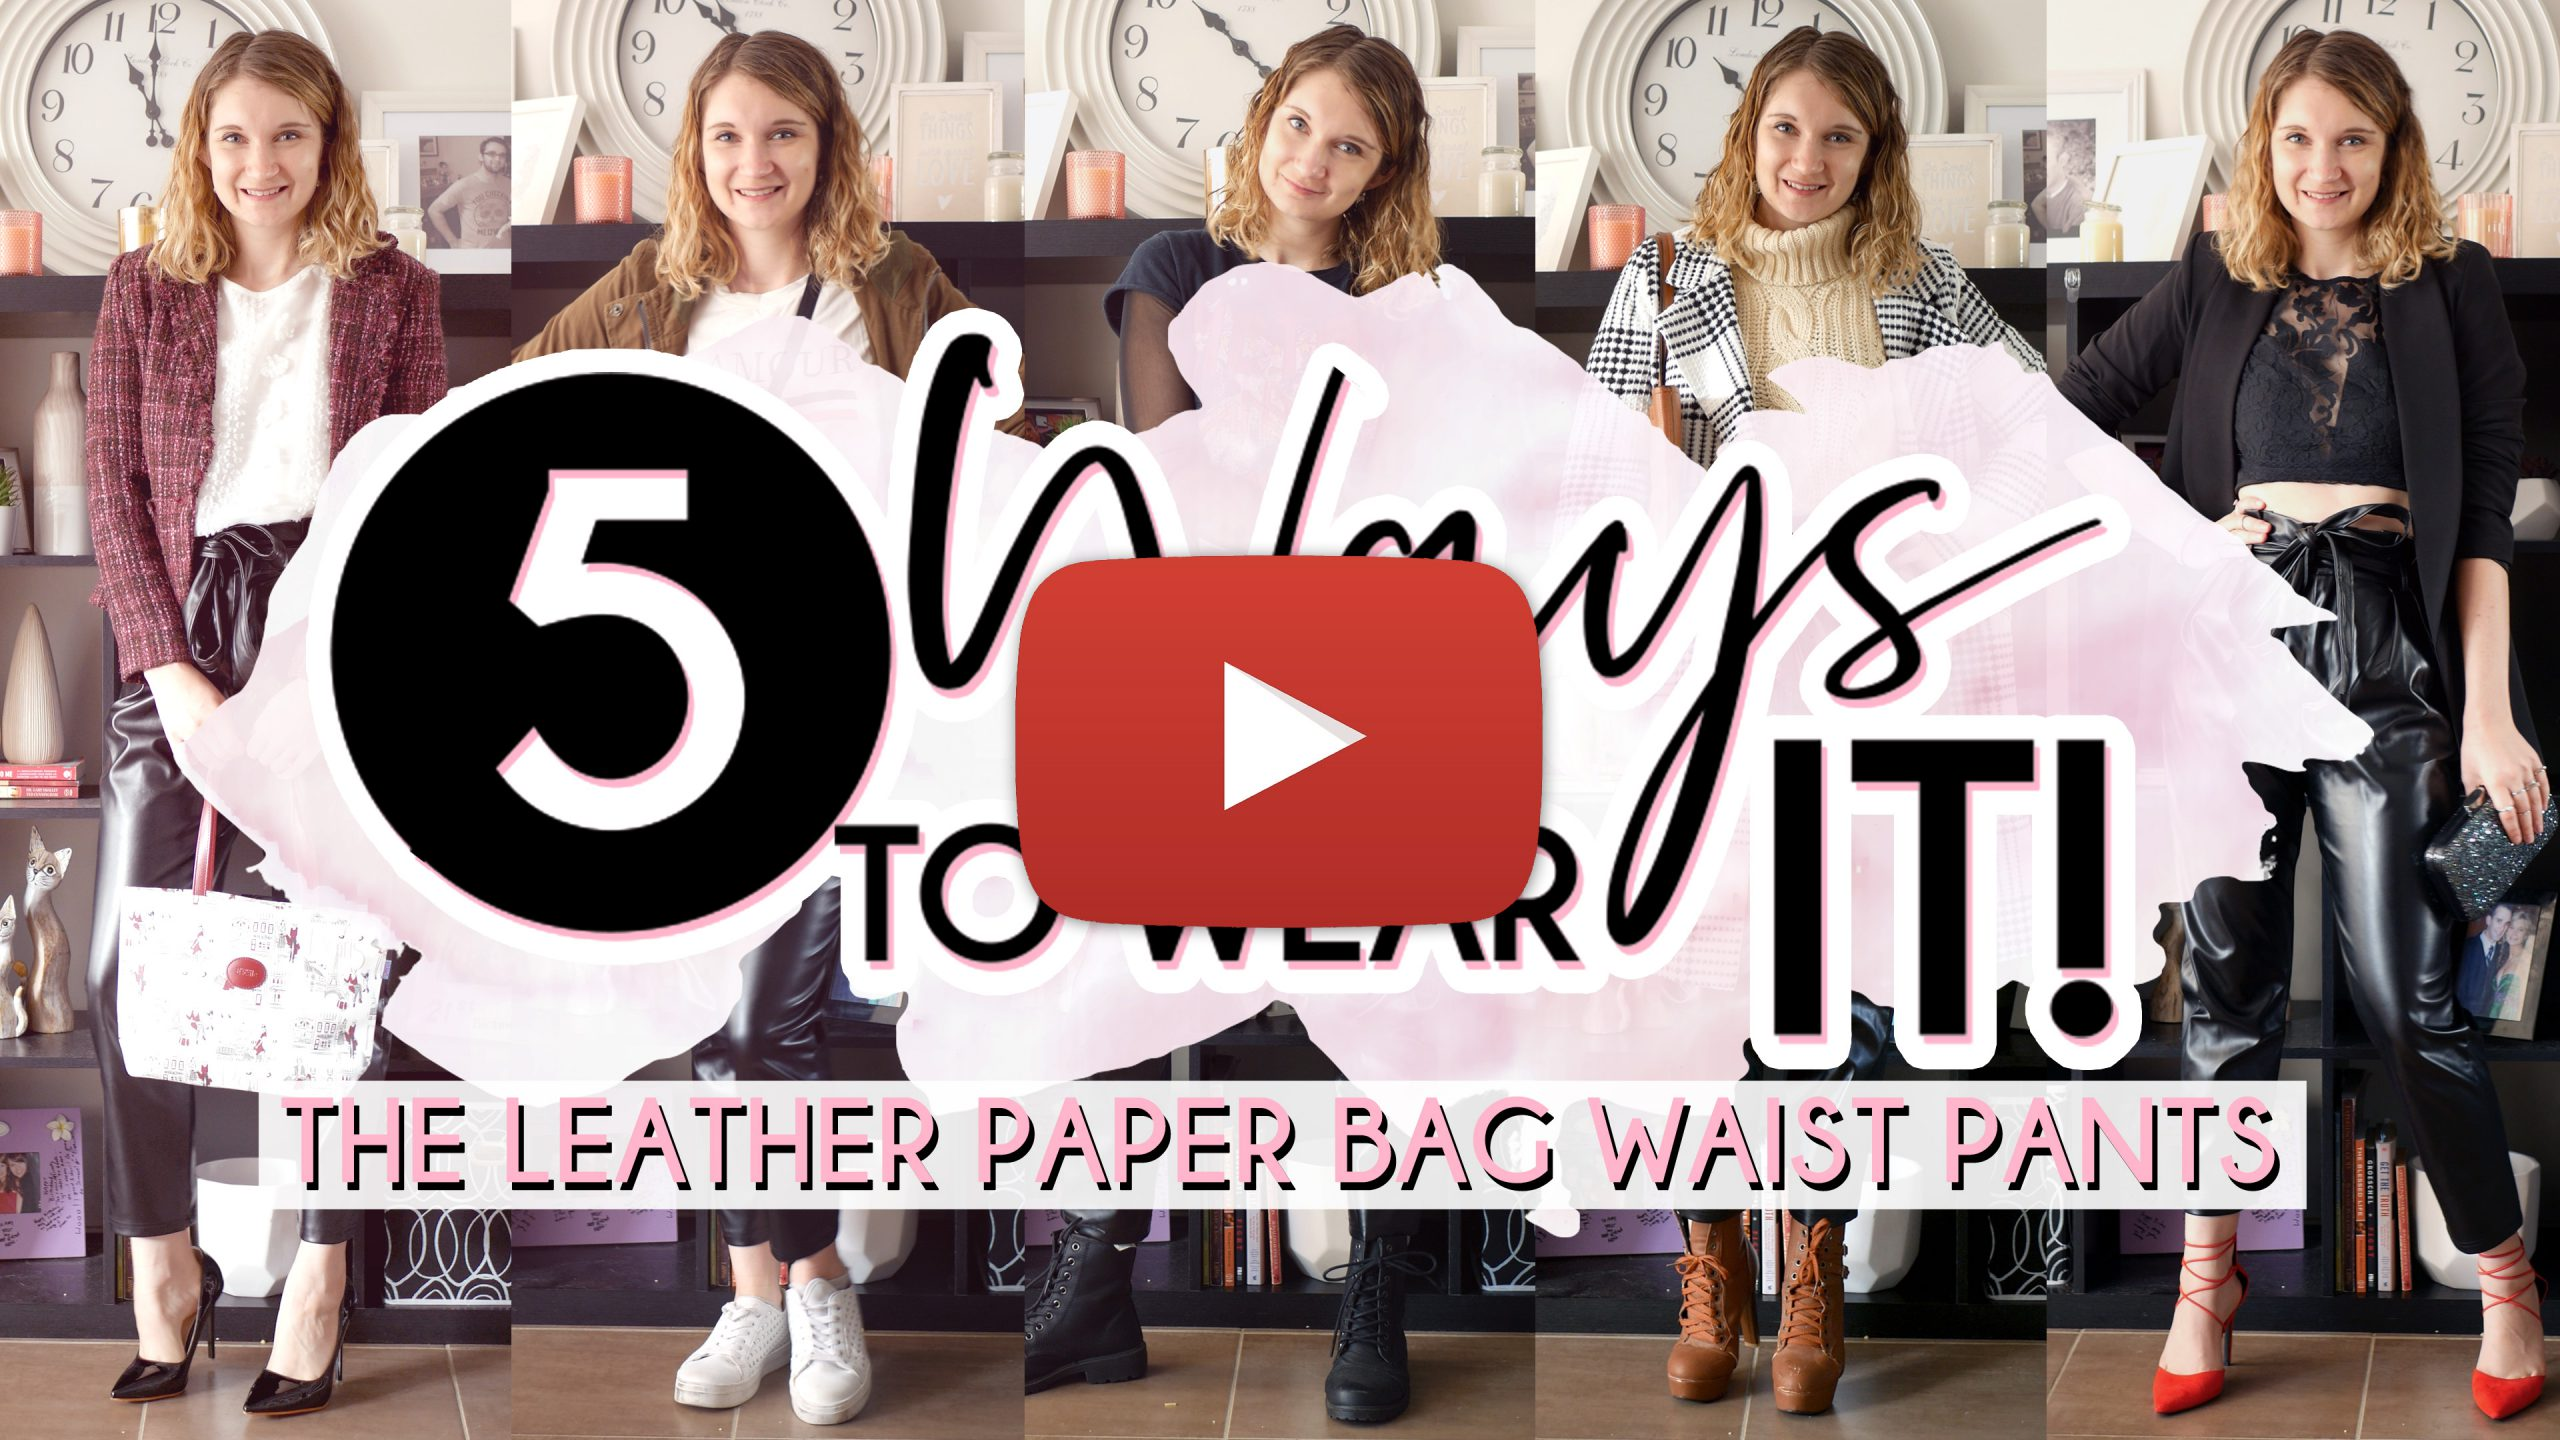 5 Ways to Wear (Leather Paper Bag Waist Pants) Youtube Thumbnail Play Button